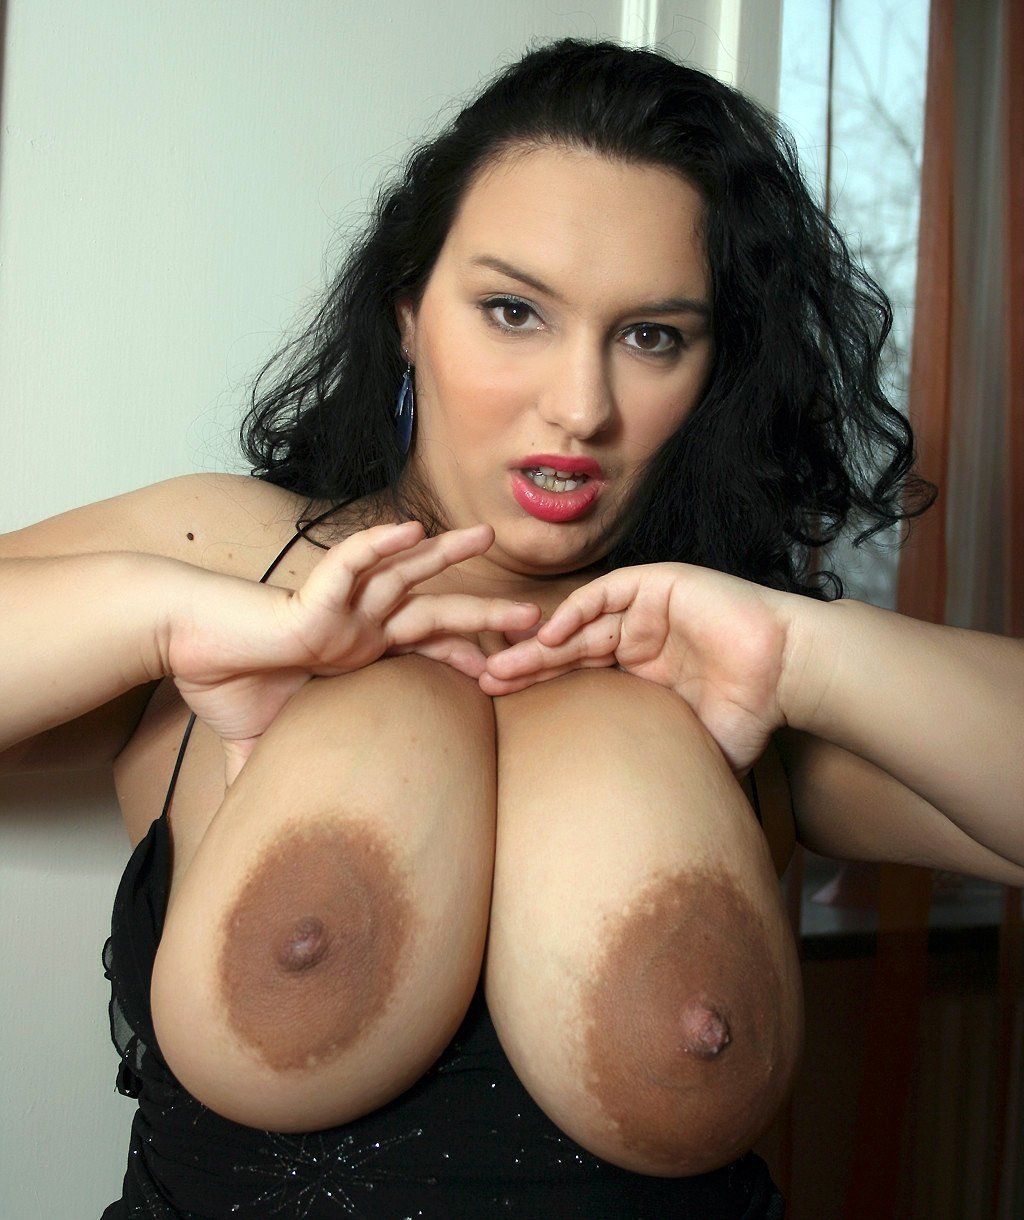 3 Tits Porn big latina tits mobile . porn galleries. comments: 3